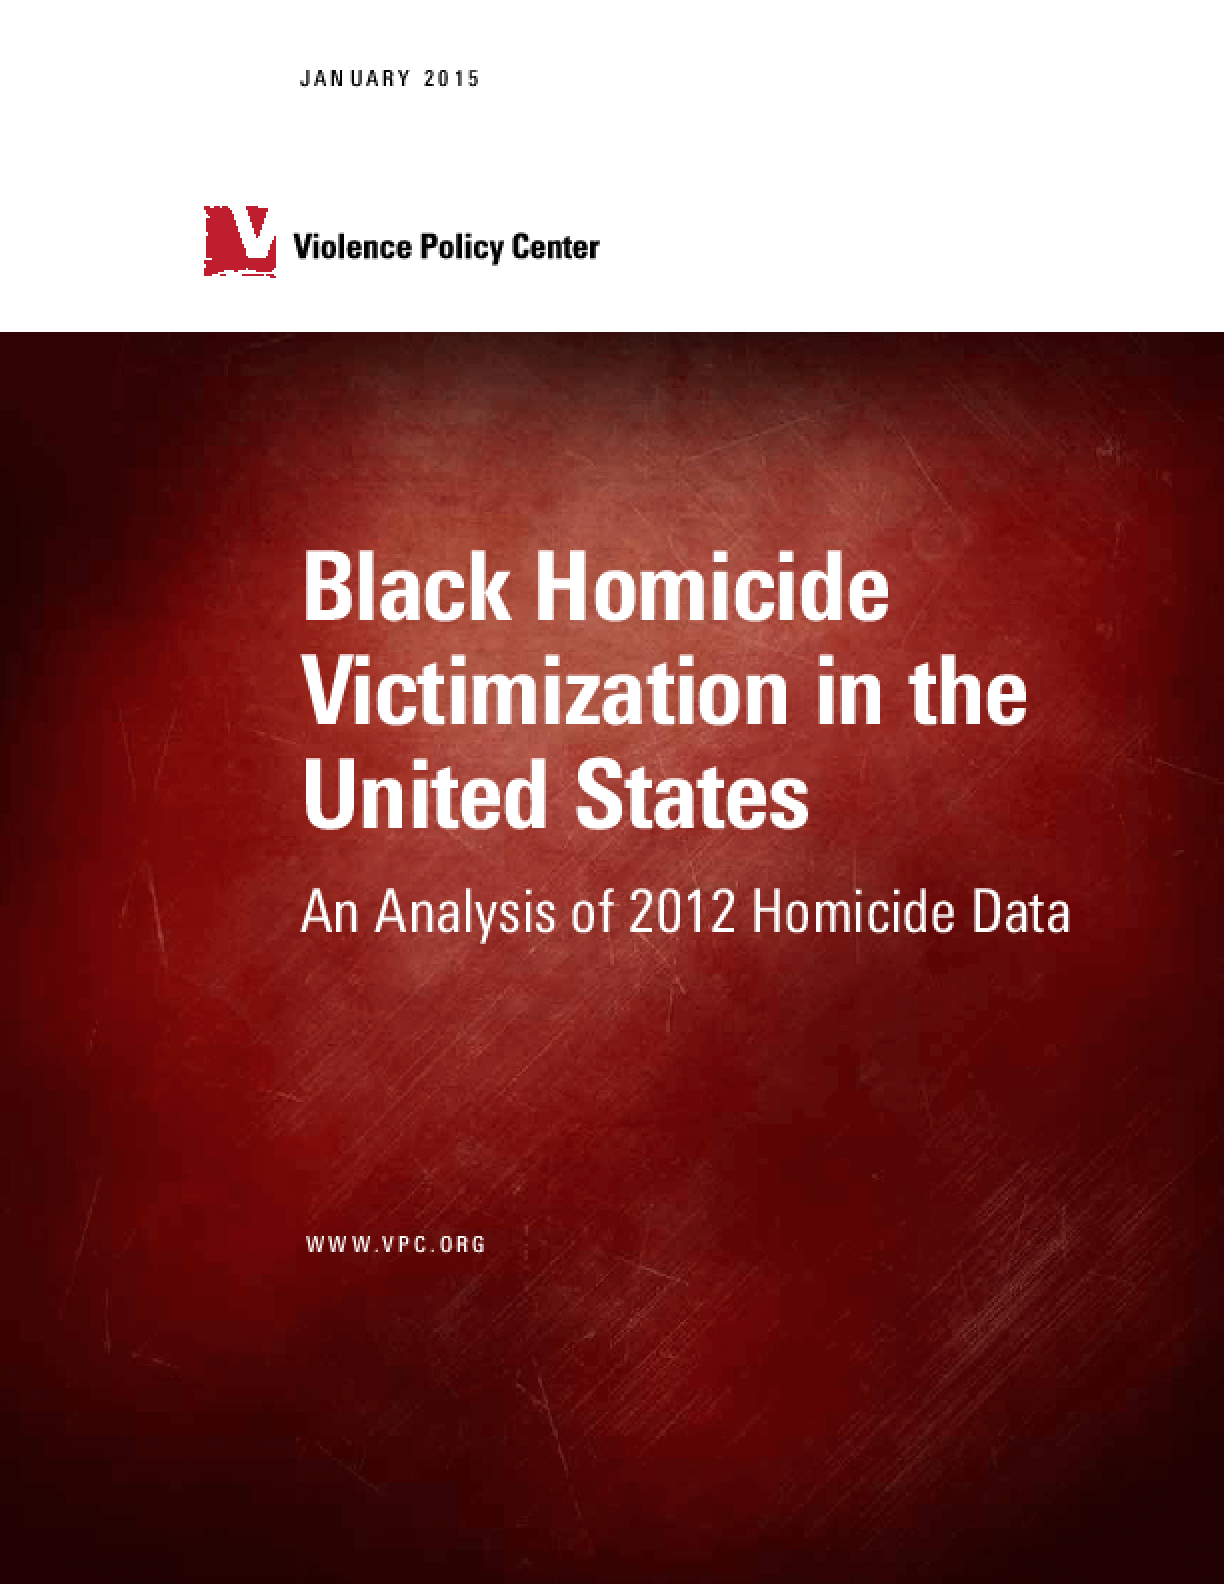 Black Homicide Victimization in the United States: An Analysis of 2012 Homicide Data